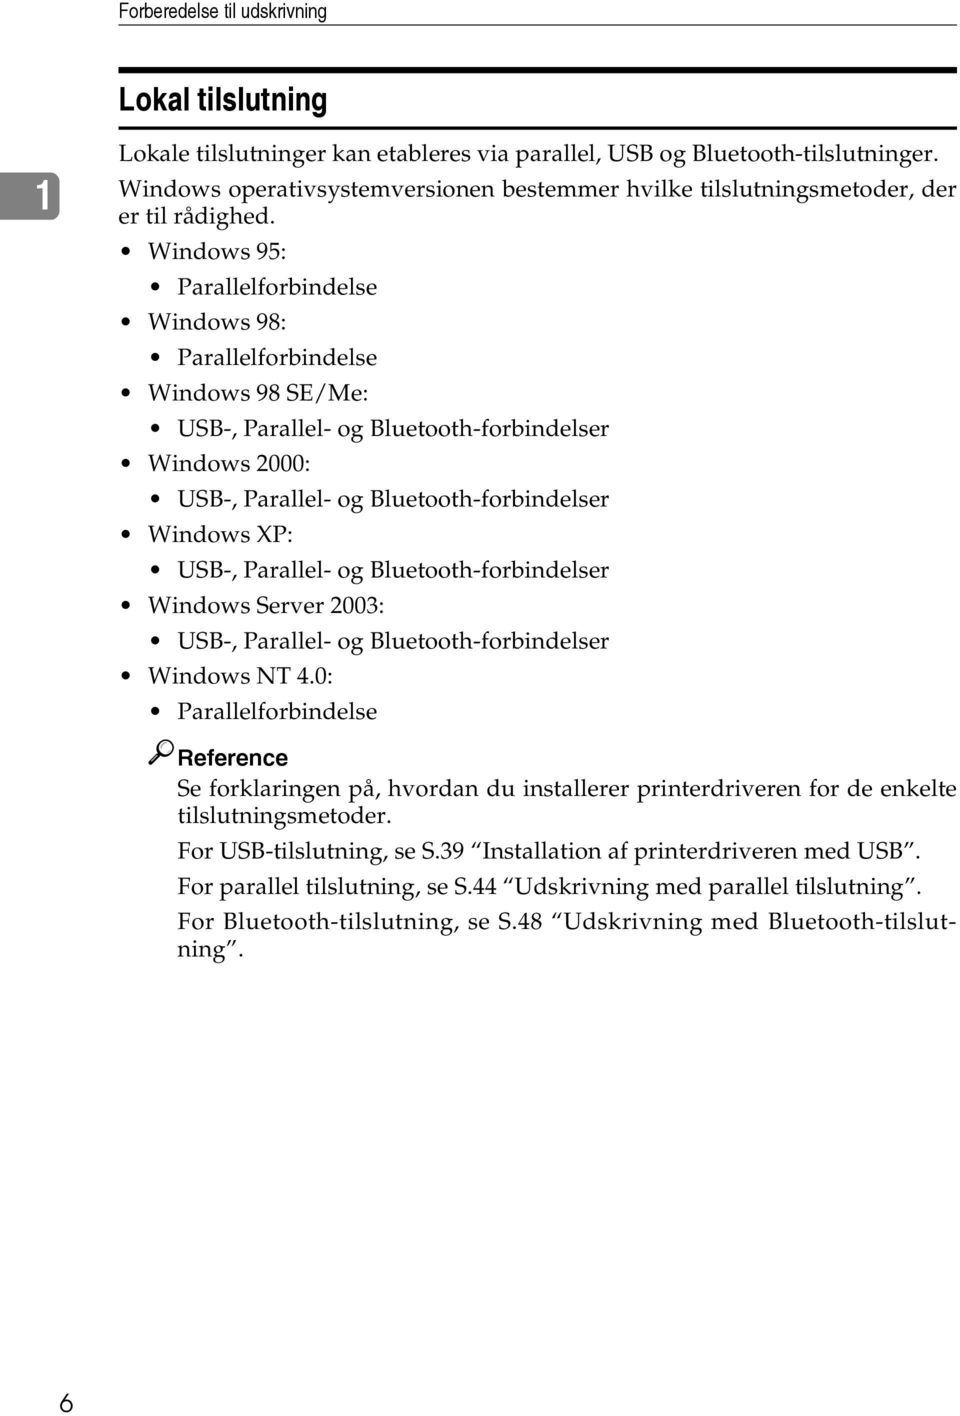 Windows 95: Parallelforbindelse Windows 98: Parallelforbindelse Windows 98 SE/Me: USB-, Parallel- og Bluetooth-forbindelser Windows 2000: USB-, Parallel- og Bluetooth-forbindelser Windows XP: USB-,